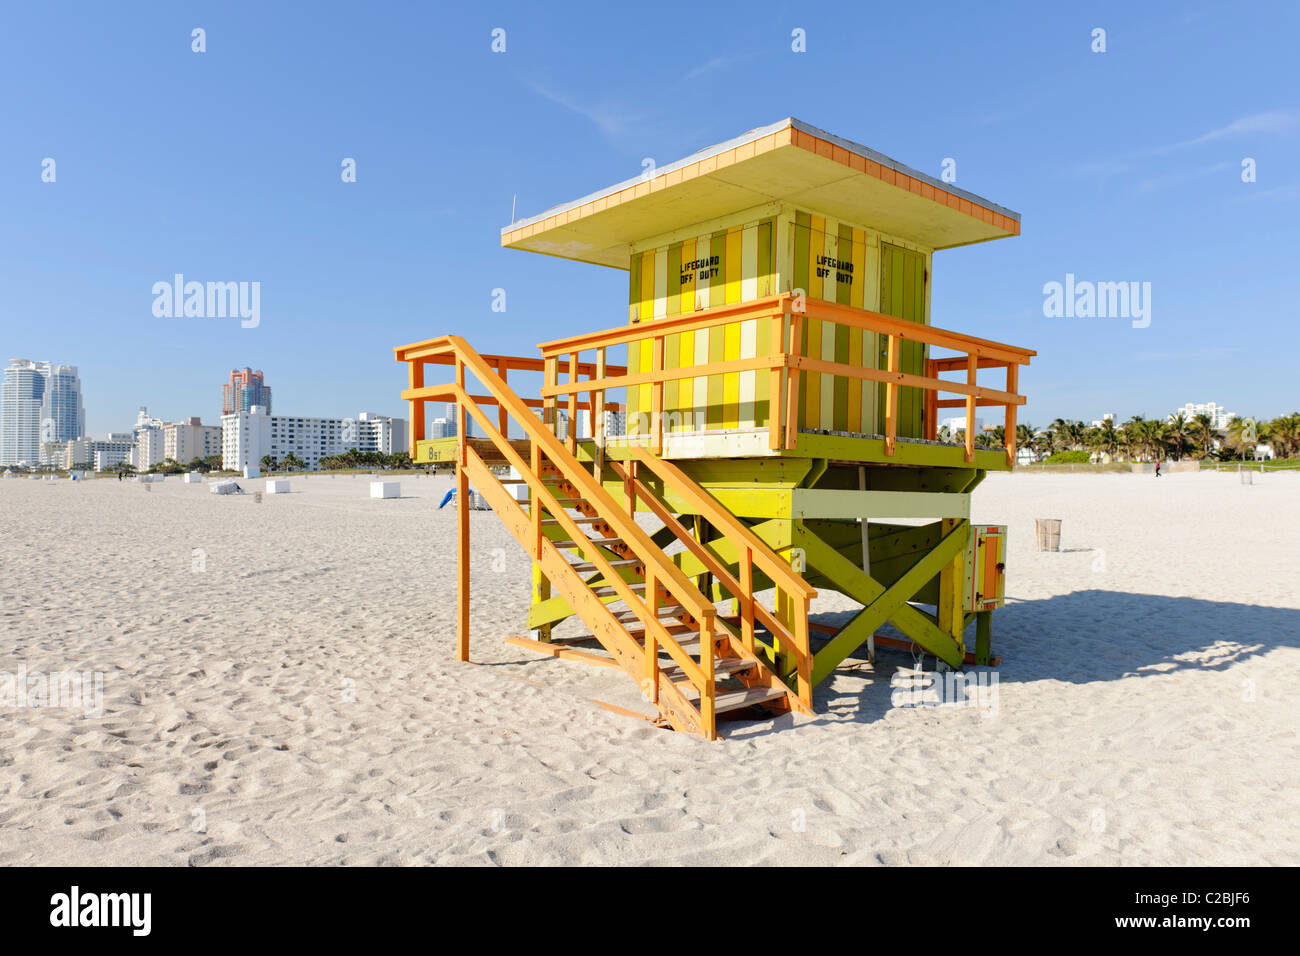 fe8138c301d6 Lifeguard Shack Stock Photos   Lifeguard Shack Stock Images - Alamy